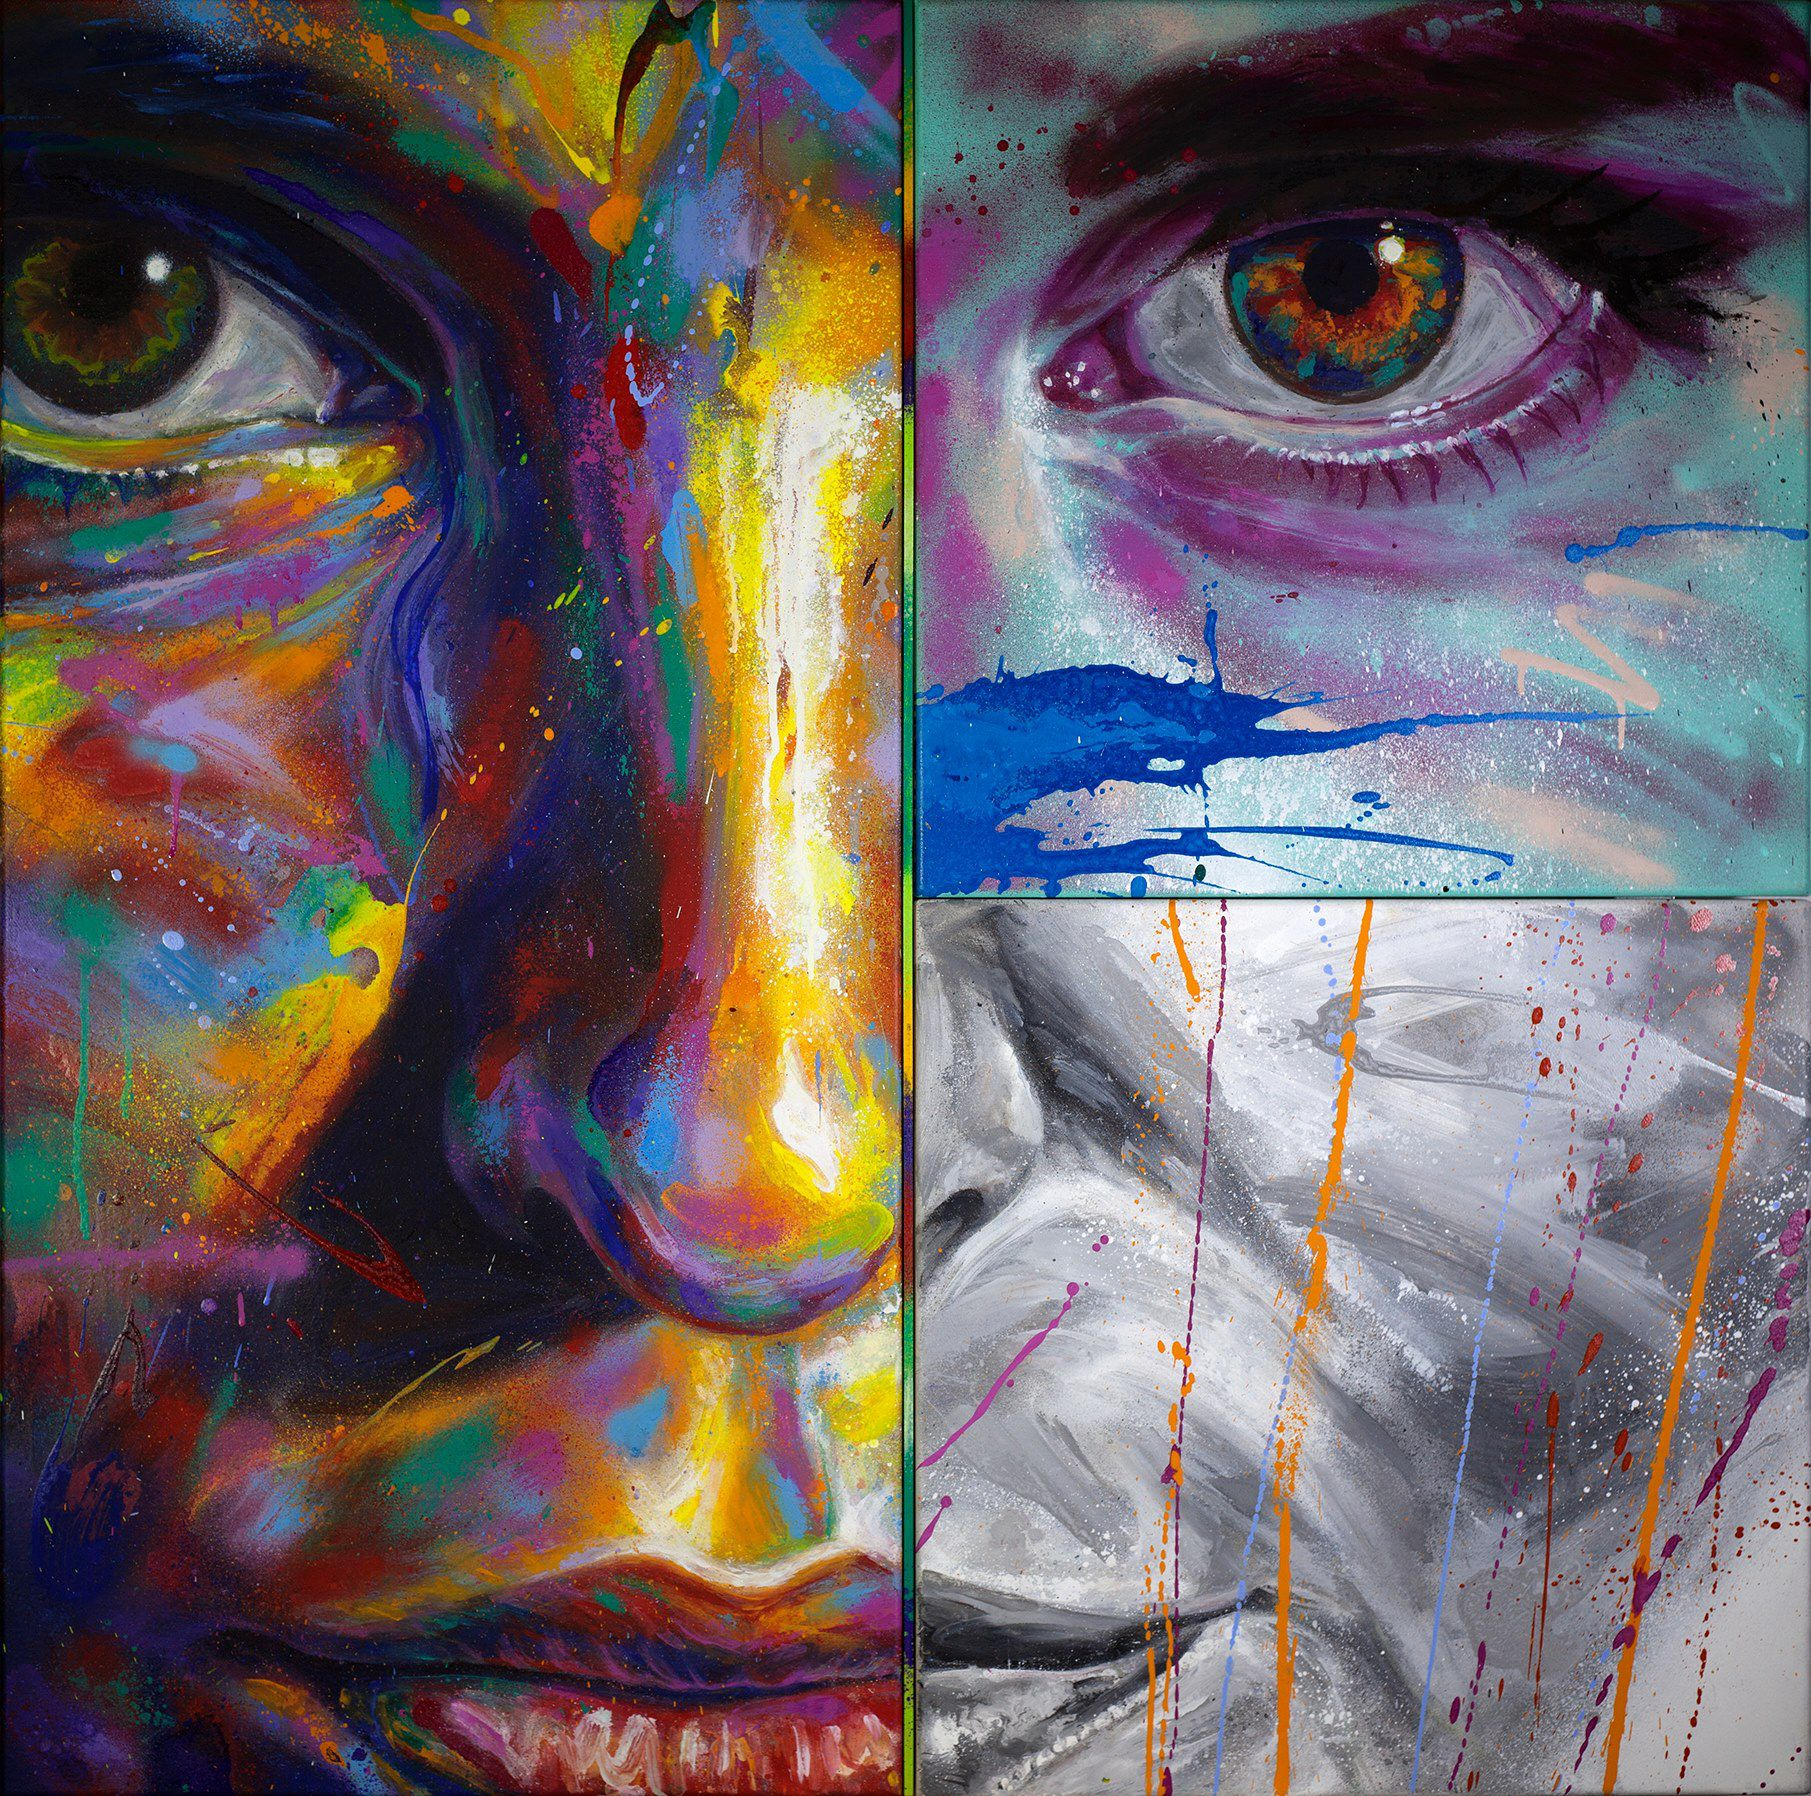 David-Walker-art-illustration 4